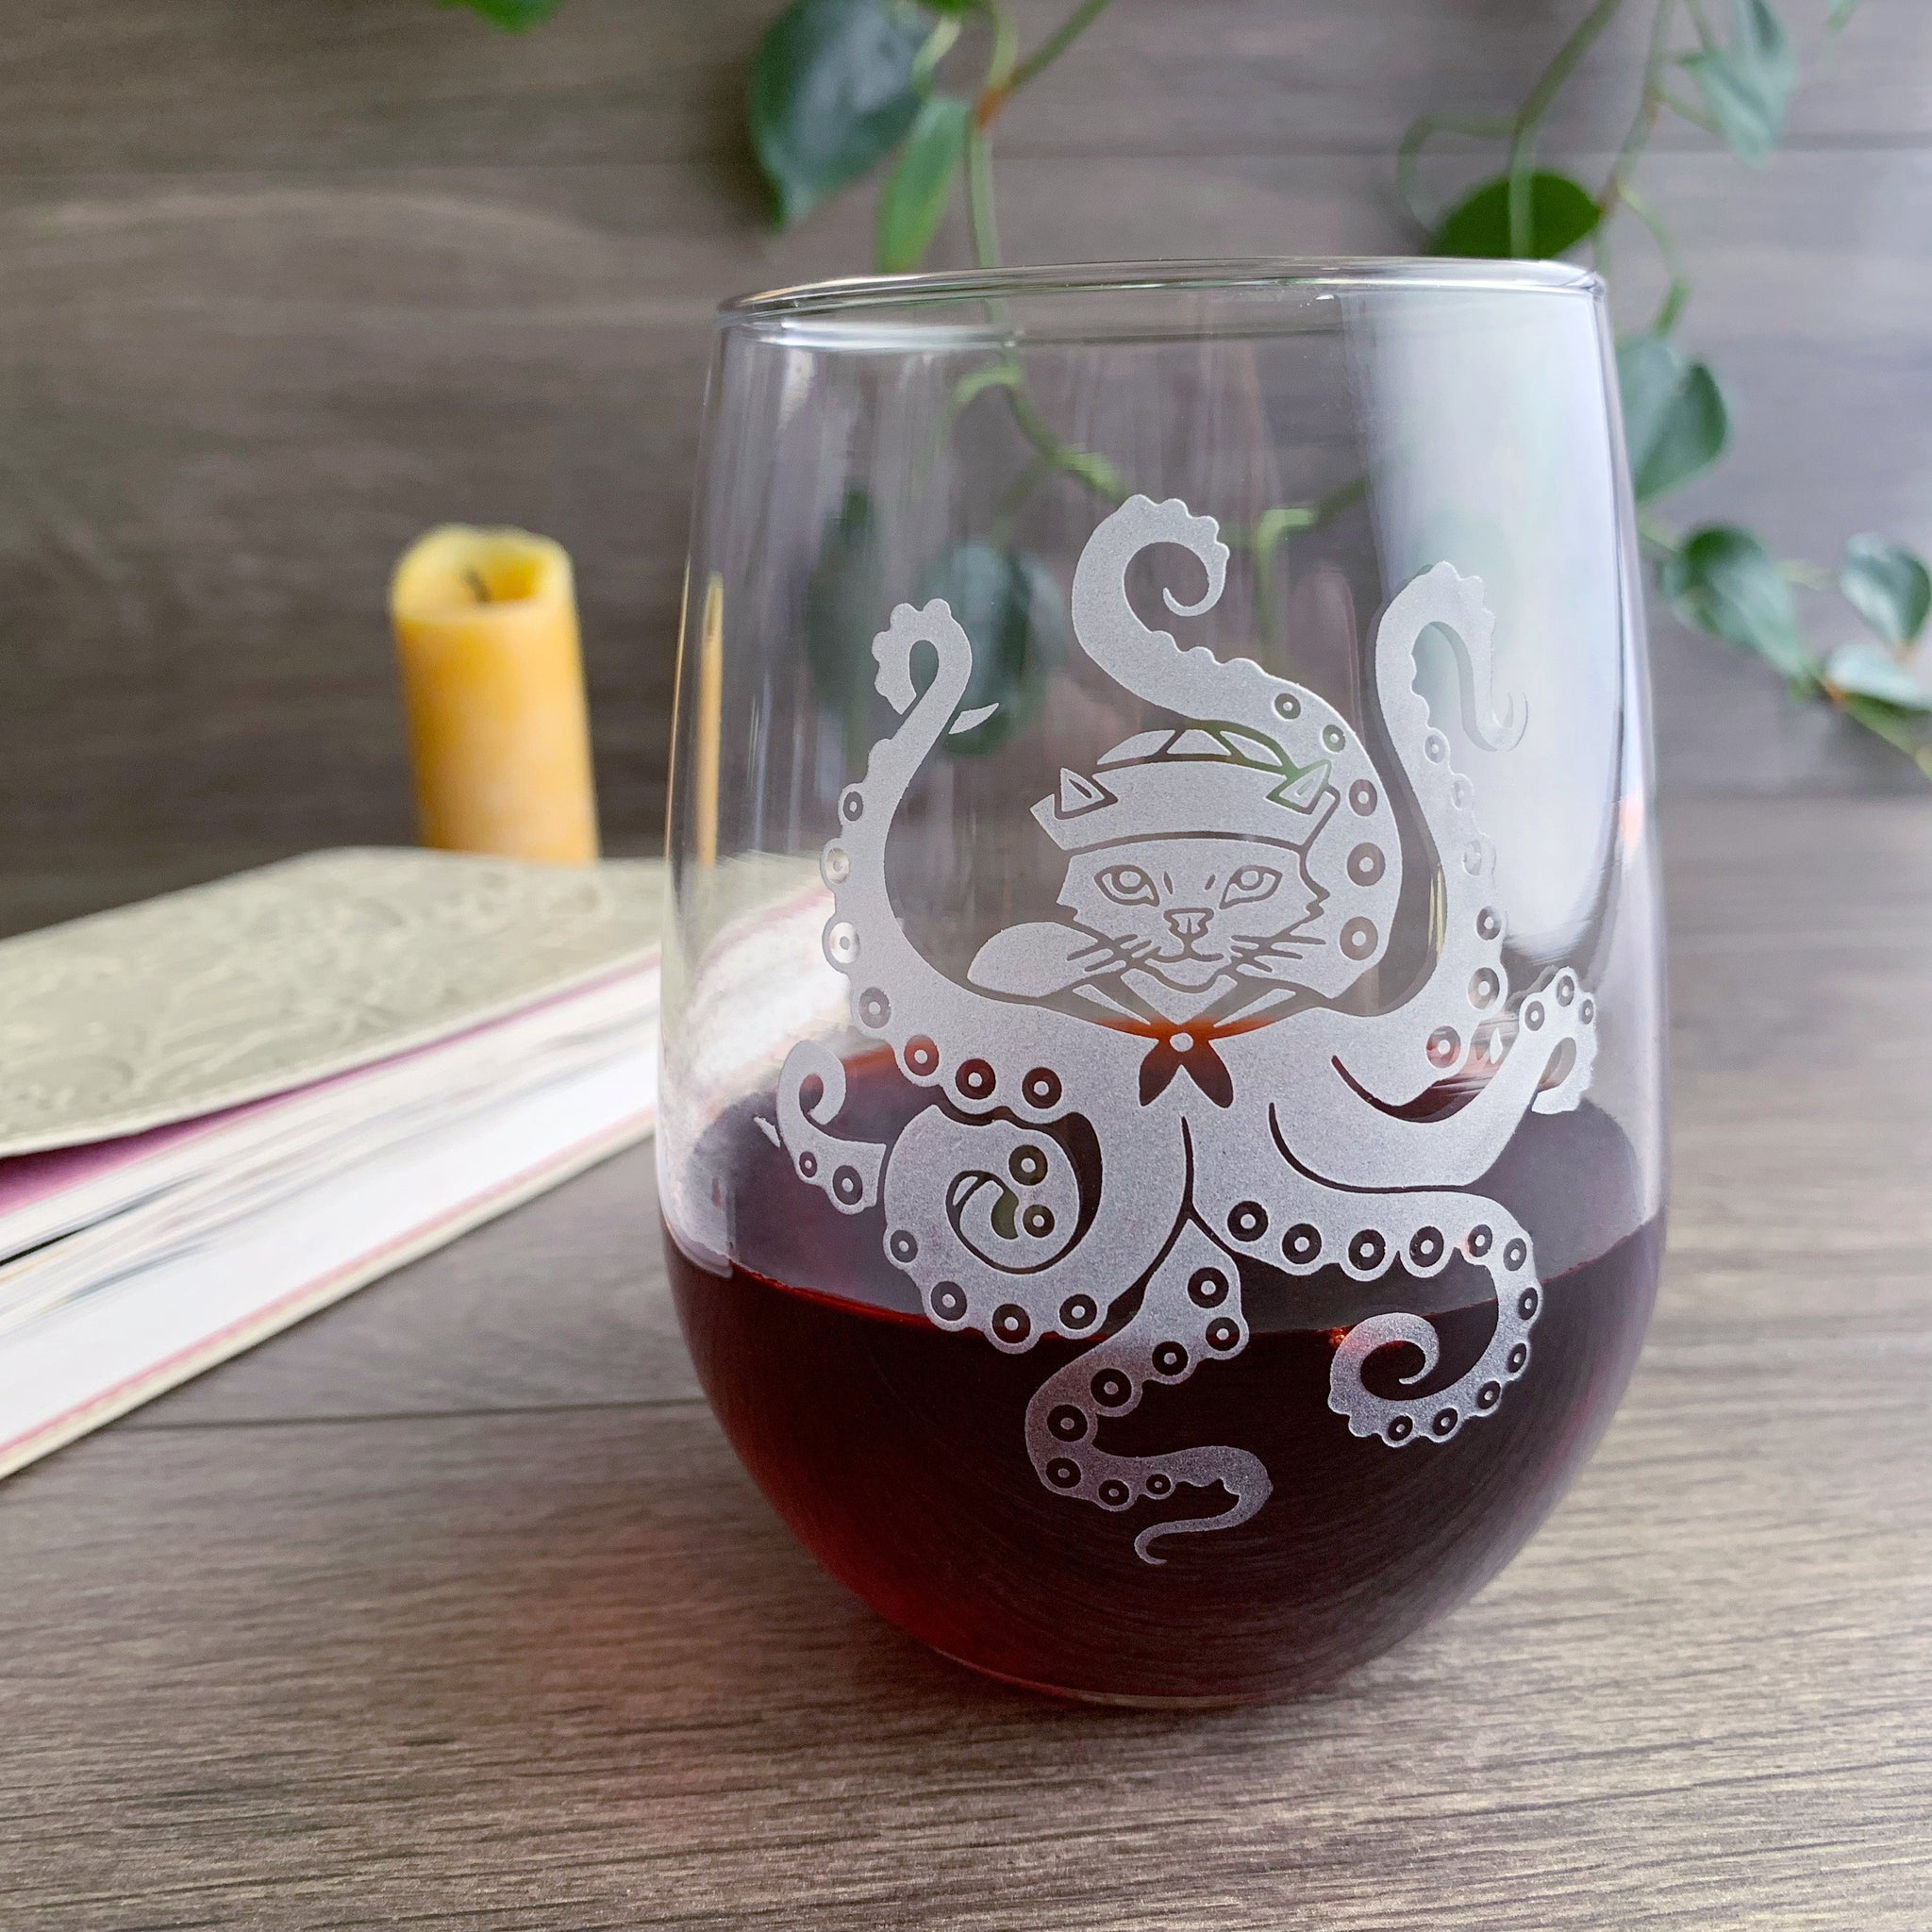 Octopus Cat stemless wine glass by Bread and Badger